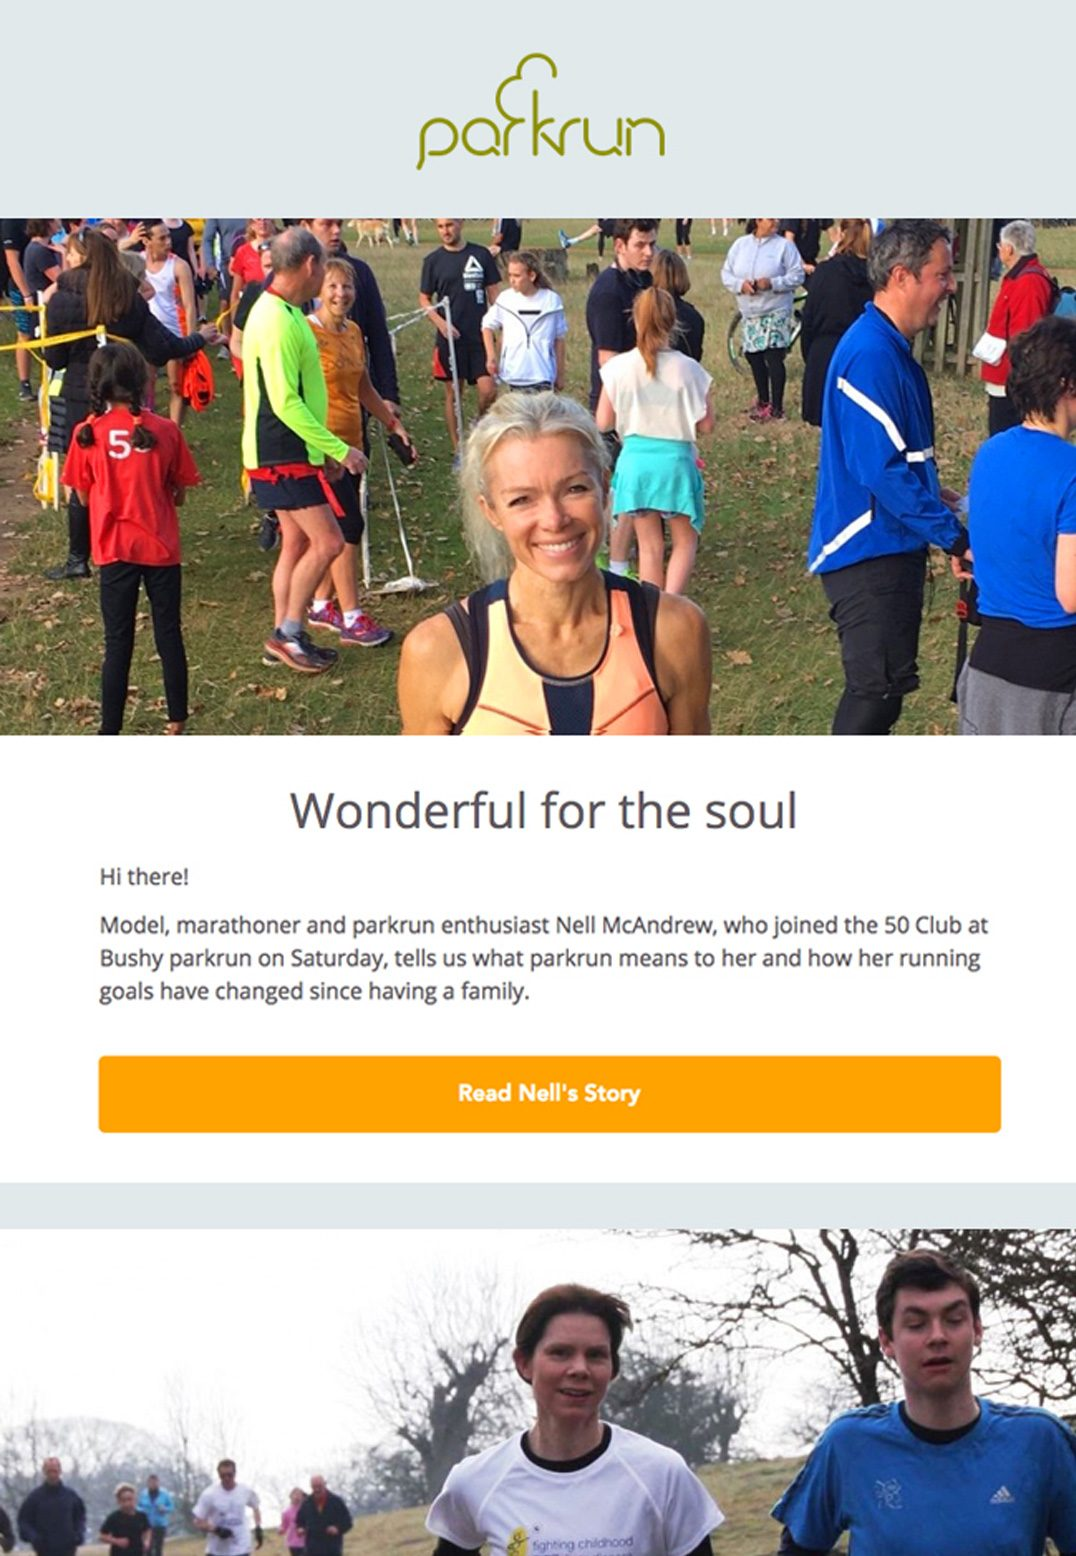 Parkrun – Email Newsletter with Strong Call to Action